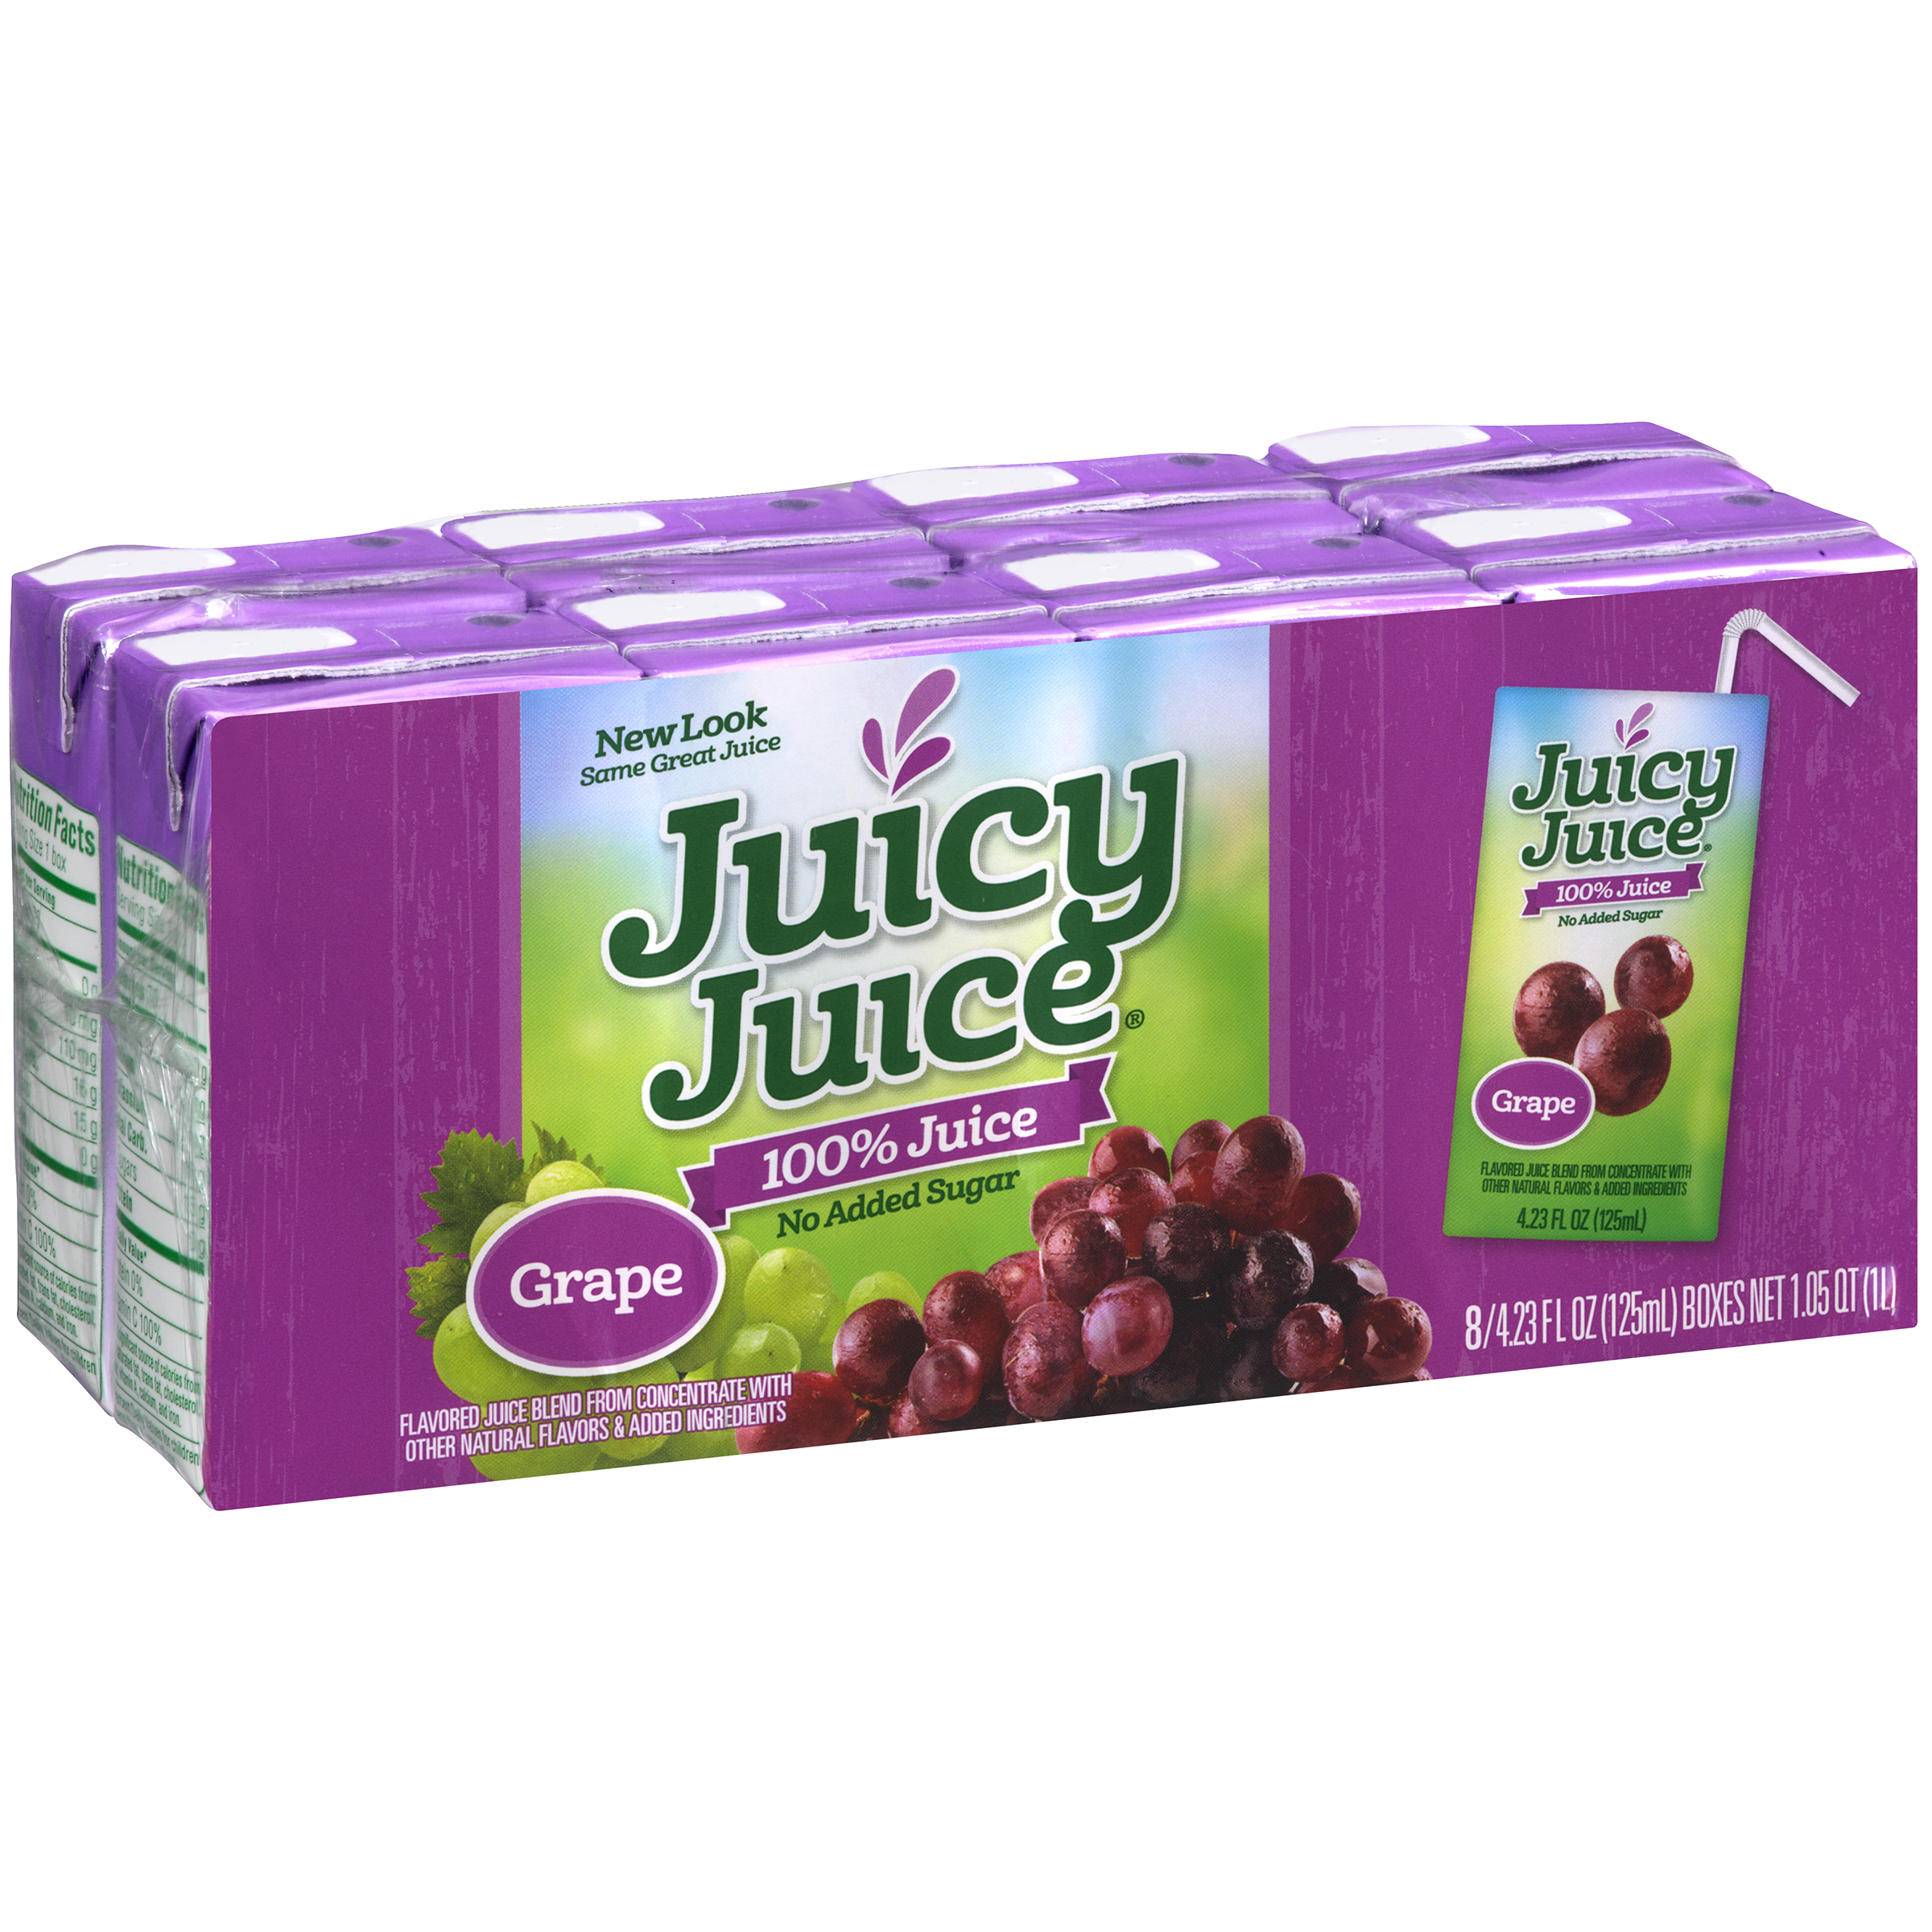 Juicy Juice 100% Juice, Grape, 4.23 Fl Oz, 8 Count